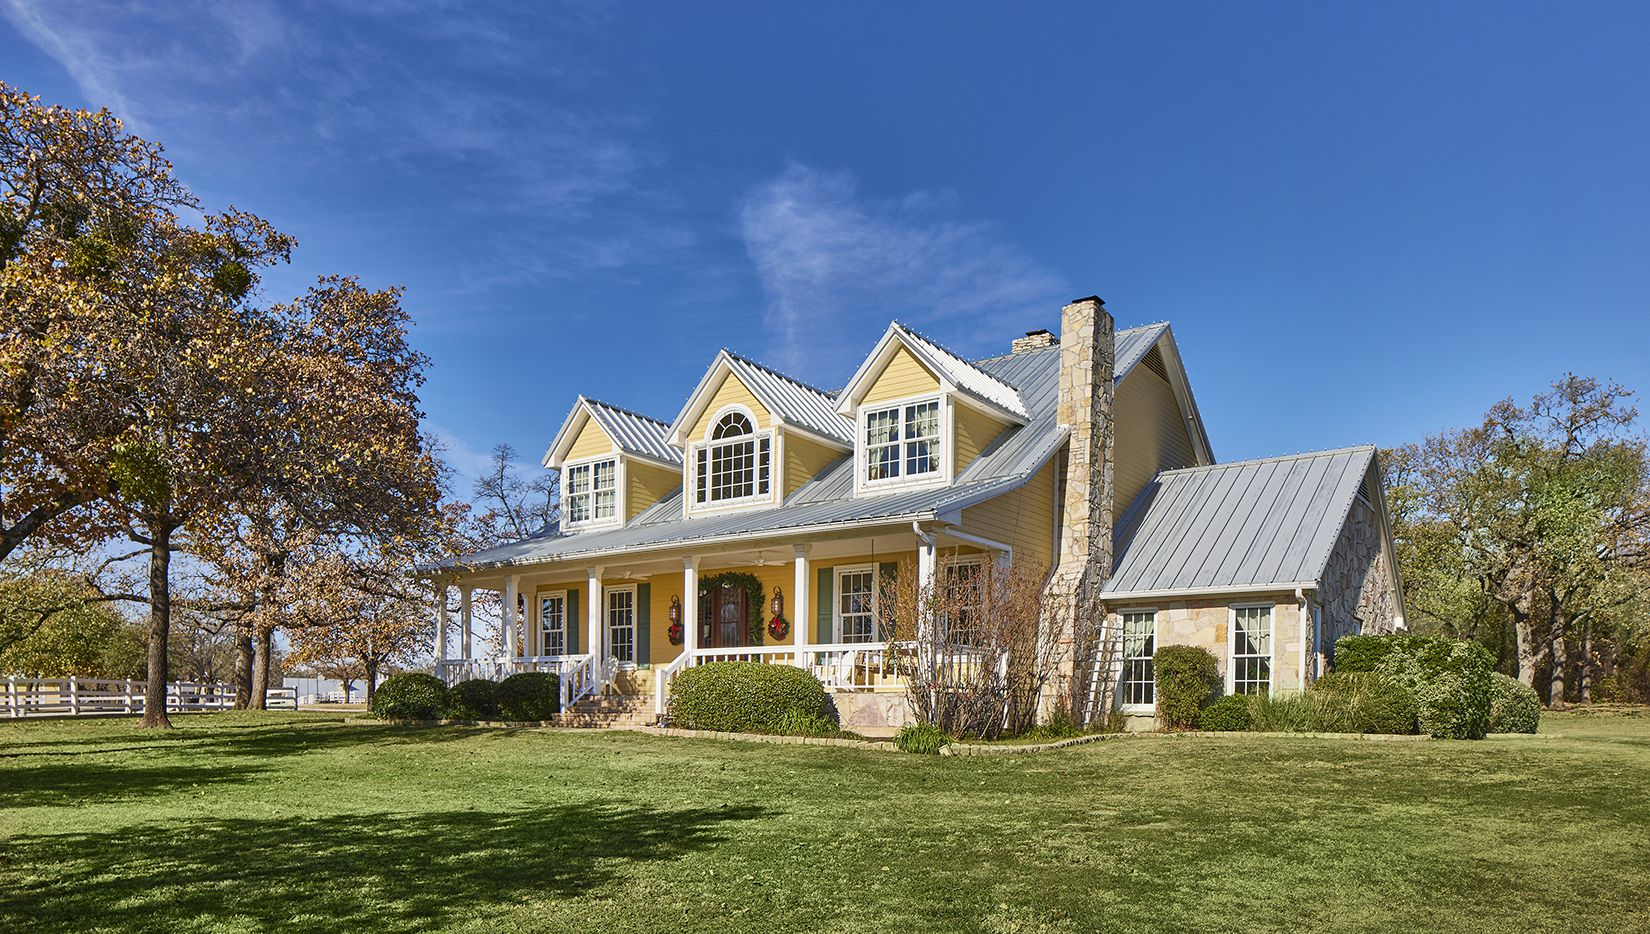 Take a look at the property at 1310 Gibbons Road in Bartonville.